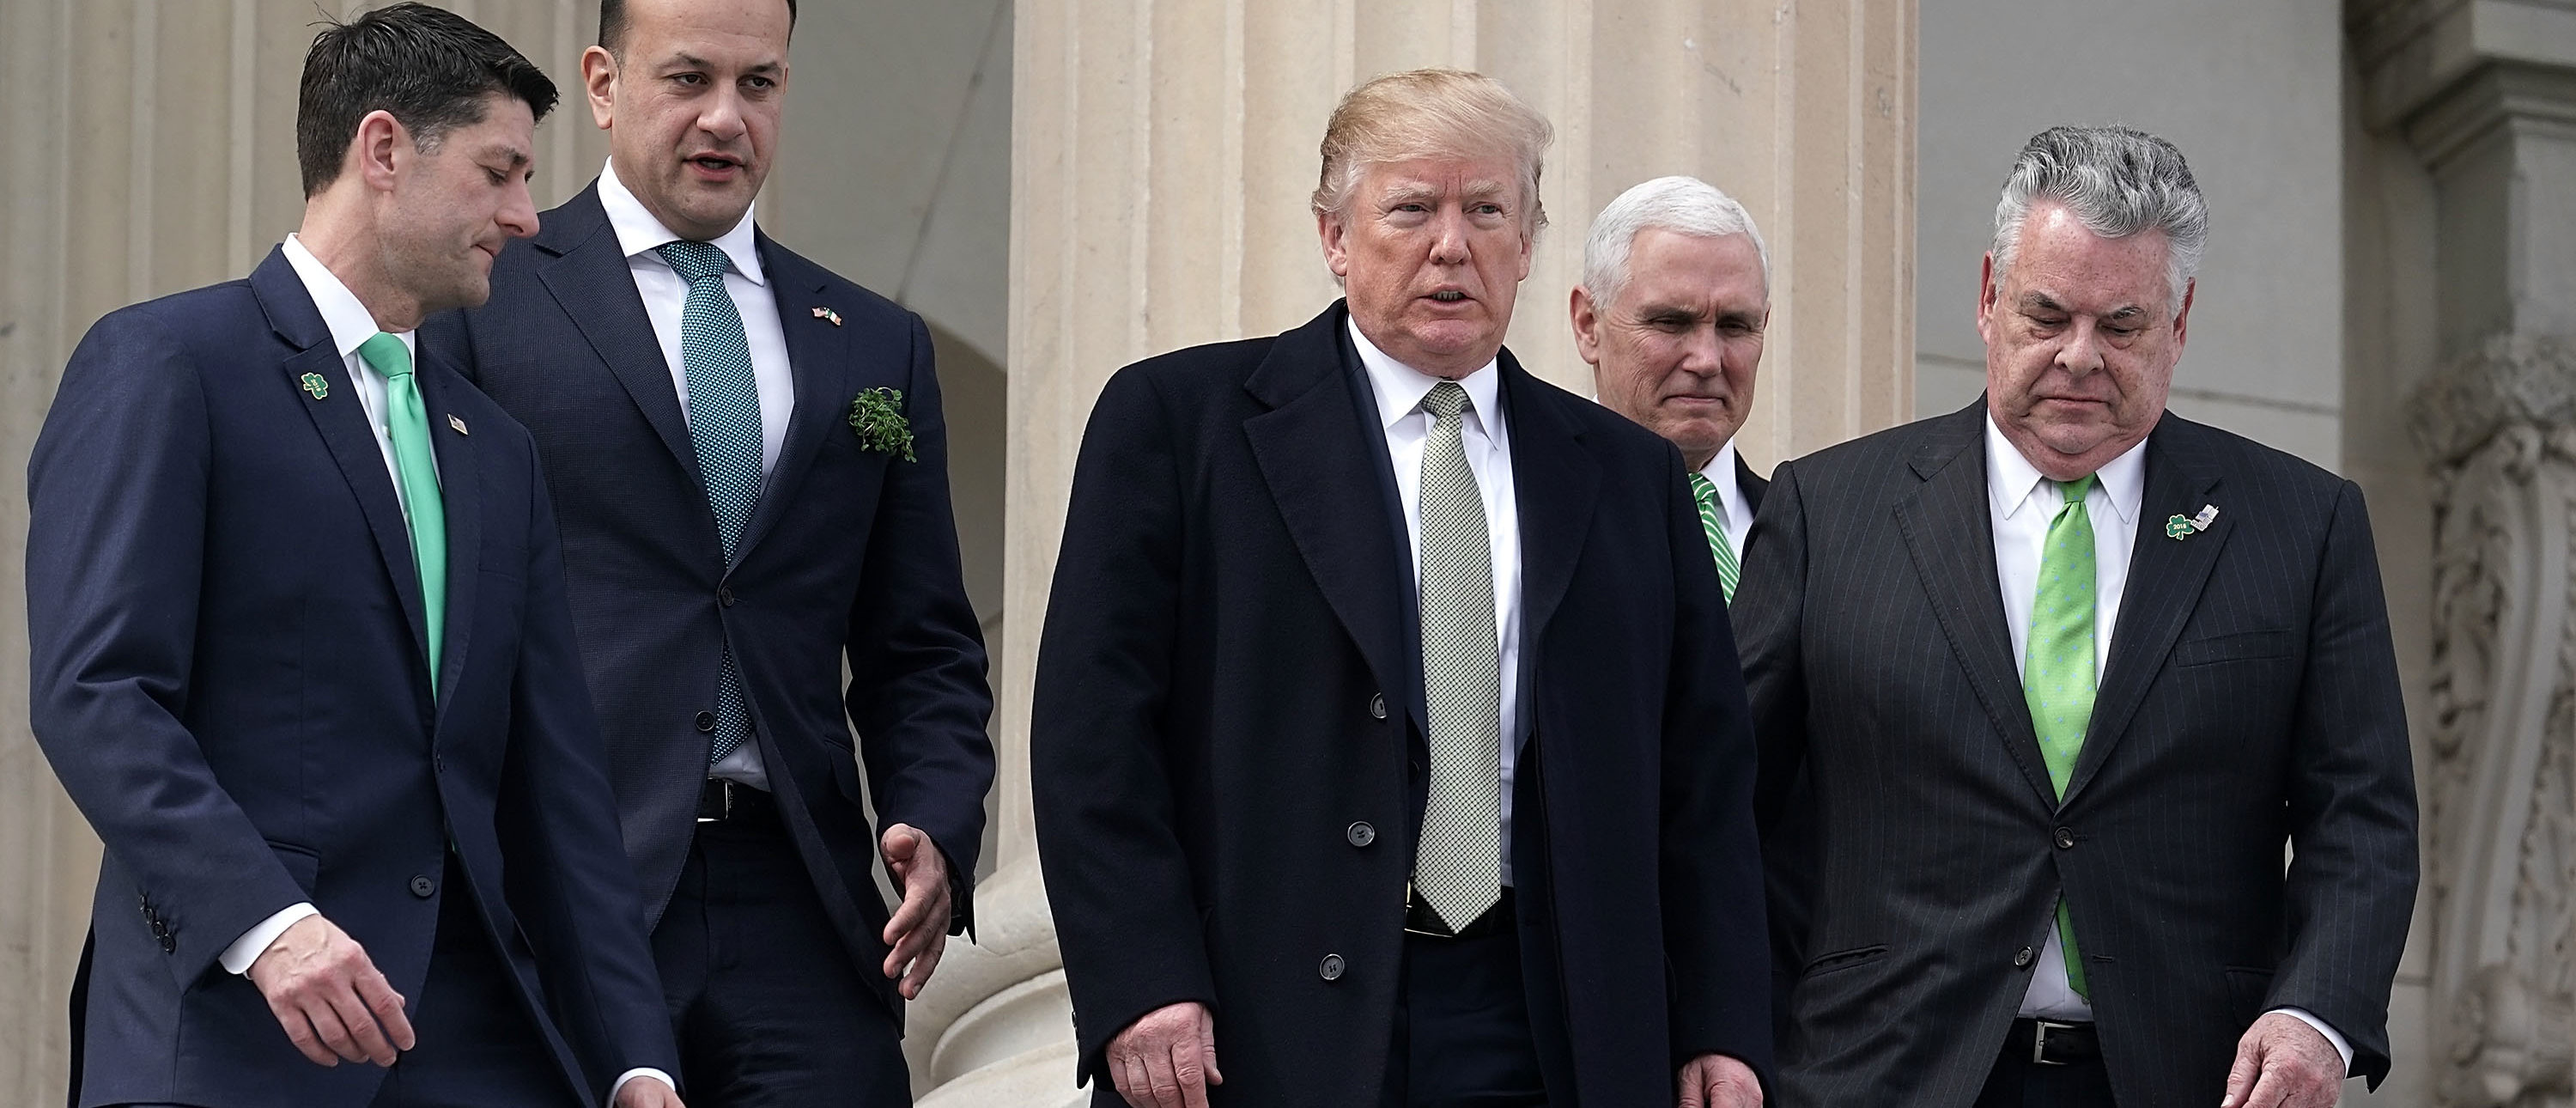 WASHINGTON, DC - MARCH 15: (L-R) U.S. Speaker of the House Rep. Paul Ryan (R-WI), Irish Taoiseach Leo Varadkar , President Donald Trump, U.S. Vice President Mike Pence, and U.S. Rep. Peter King (R-NY) walk down the House steps at the Capitol after the Friends of Ireland luncheon March 15, 2018 on Capitol Hill in Washington, DC. Trump and Varadkar attended the annual luncheon hosted by Speaker Ryan, to commemorate St. Patrick's Day. (Photo by Alex Wong/Getty Images)